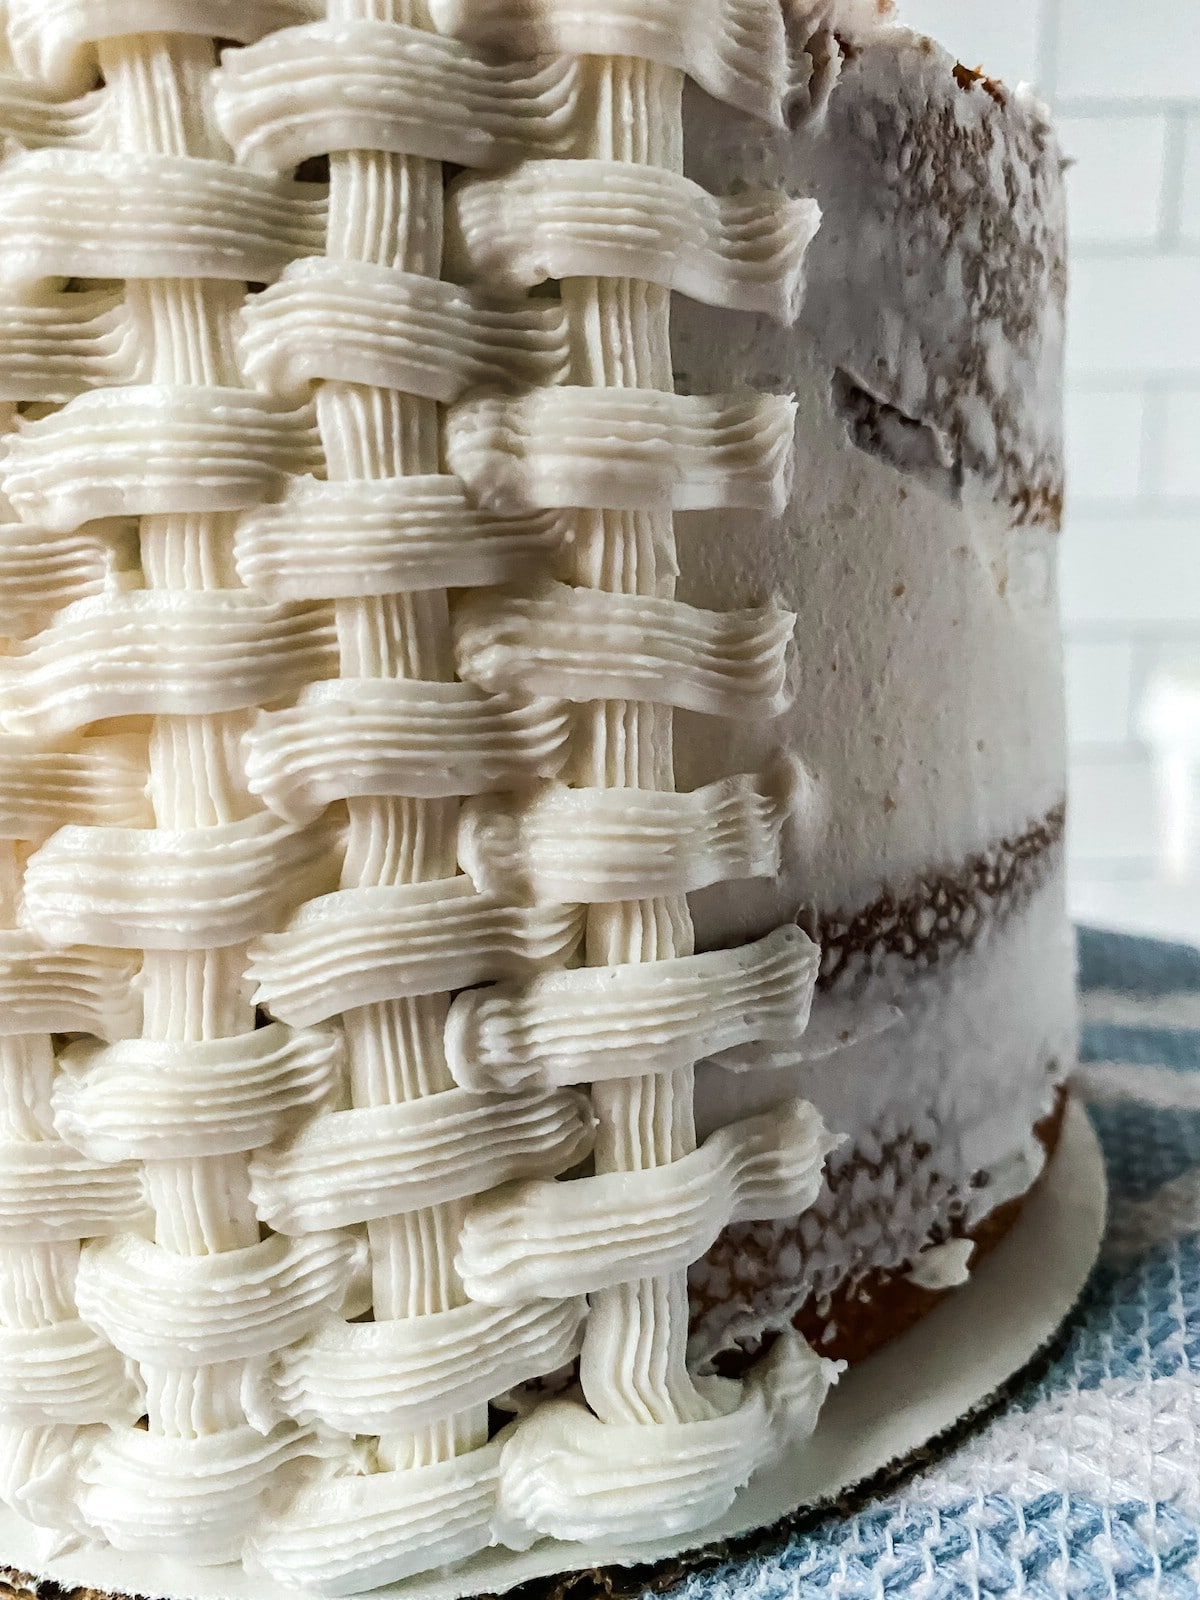 Stripes of white icing in a basket woven design on layer cake